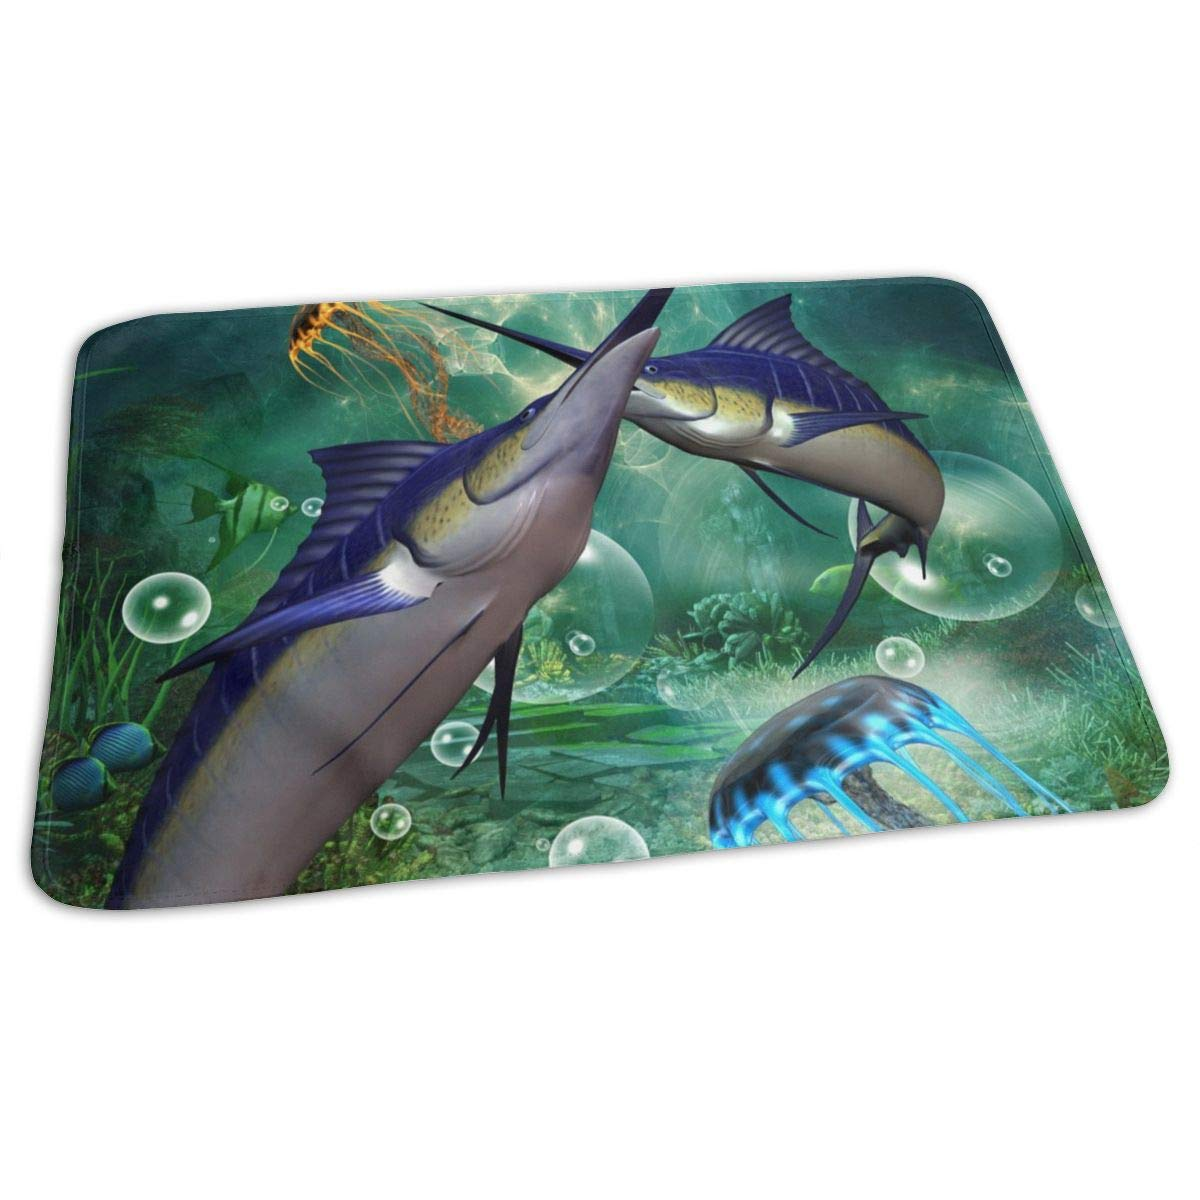 Osvbs Lovely Baby Reusable Waterproof Portable Beautiful Marlin 3D Rendering Changing Pad Home Travel 27.5''x19.7'' by Osvbs